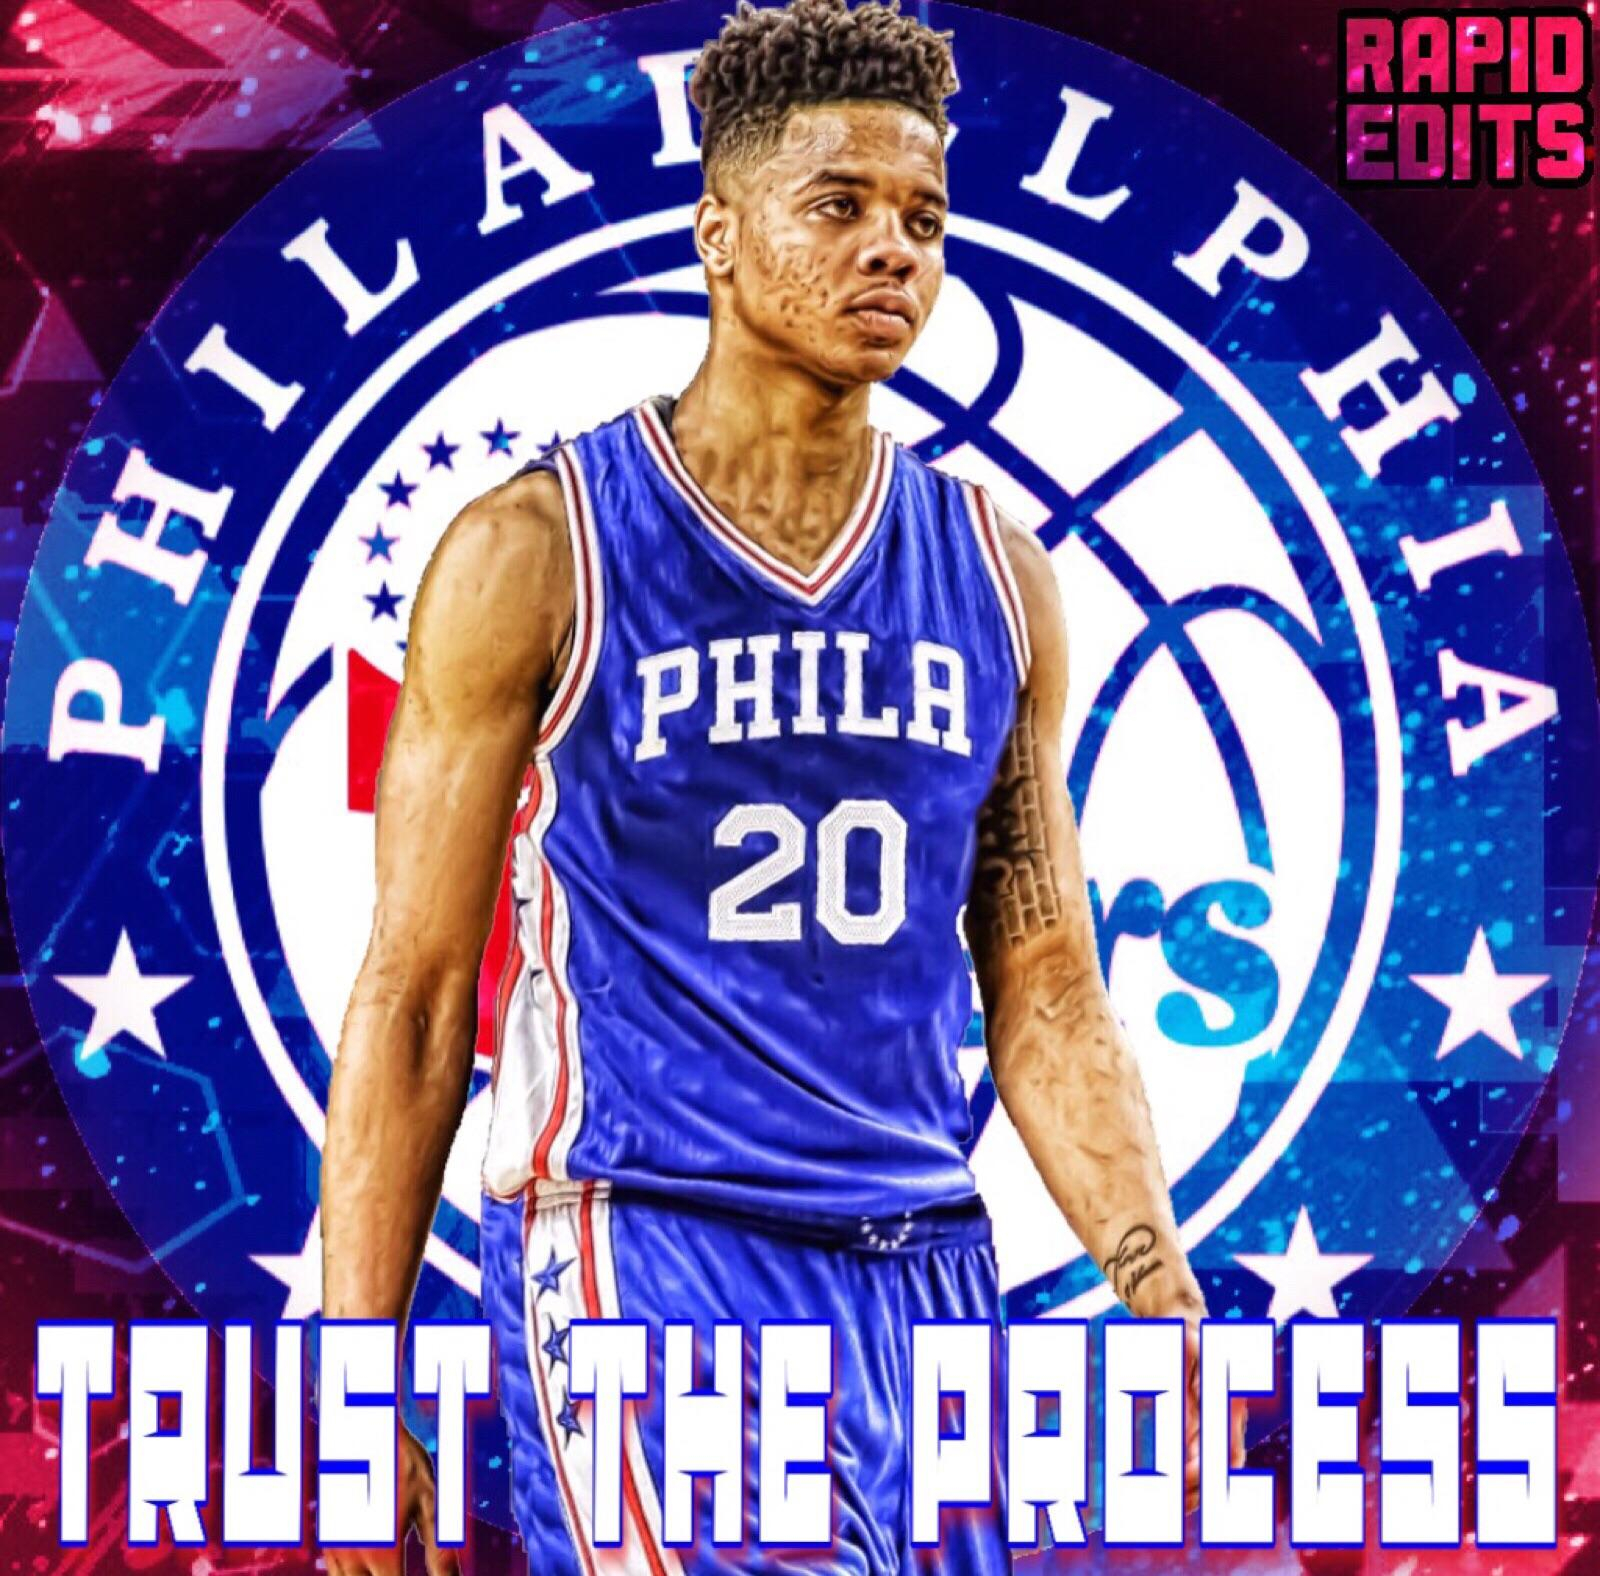 Fultz will reign supreme, one day.